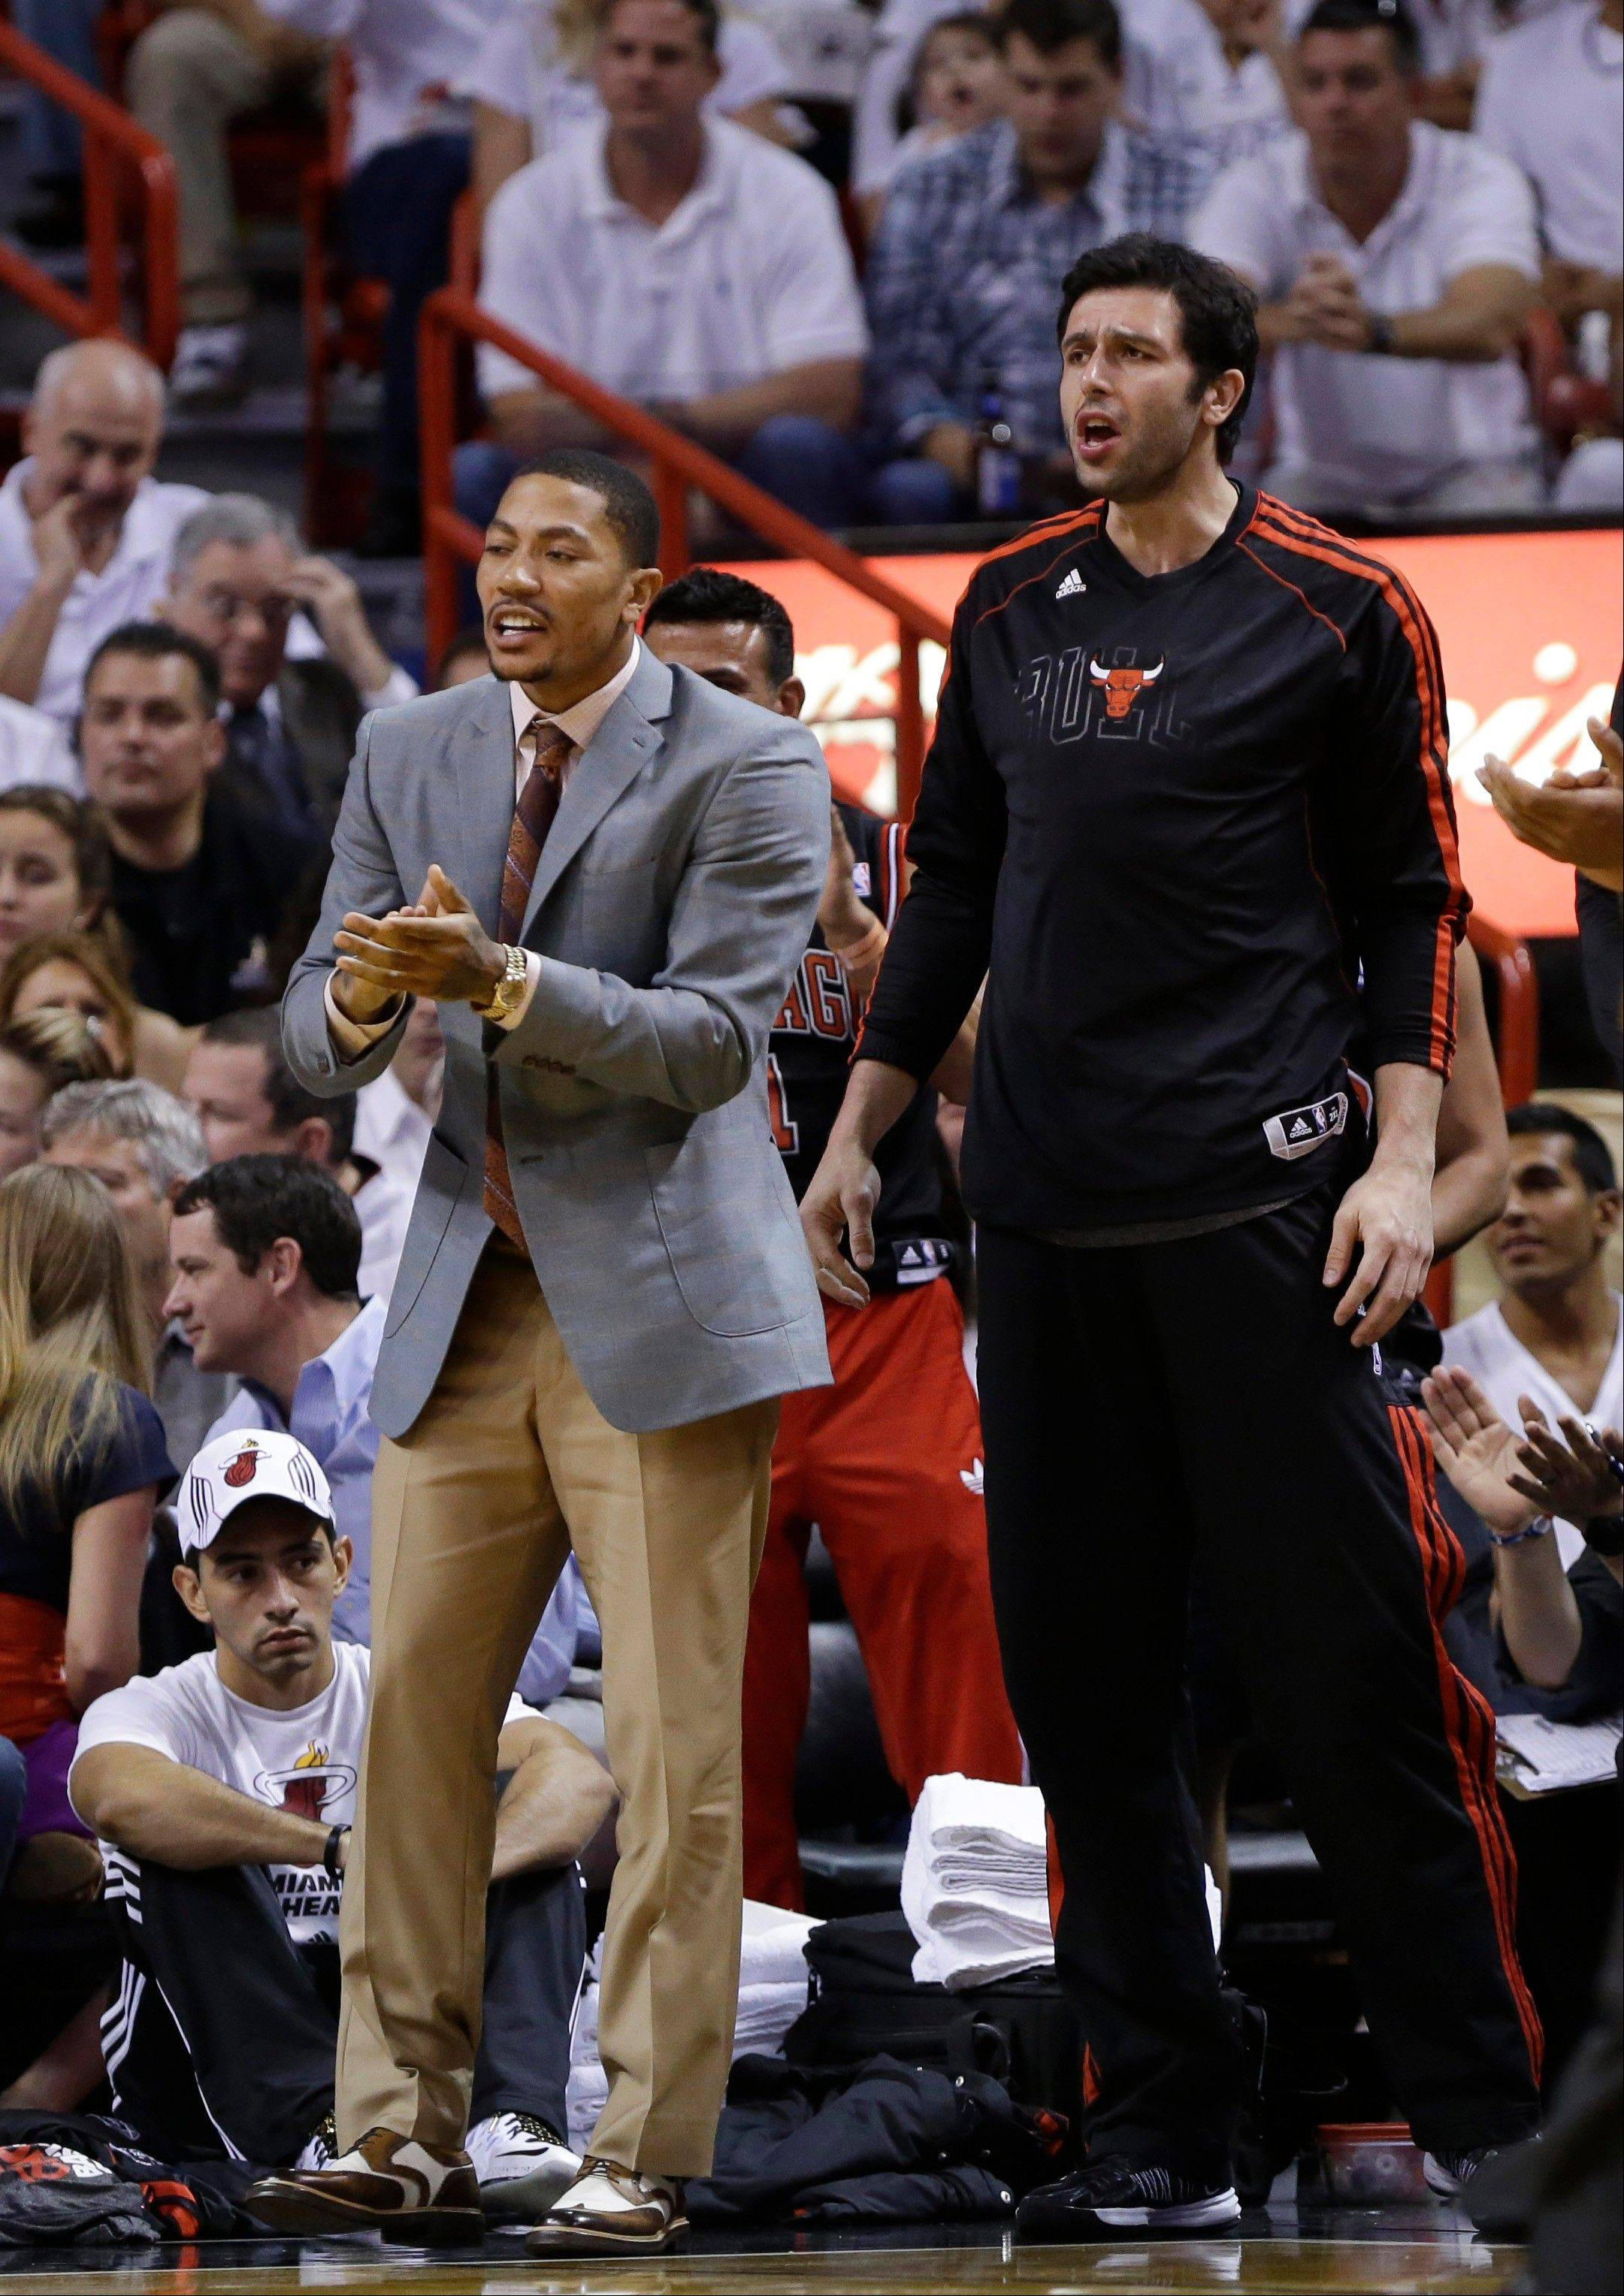 Bulls guard Derrick Rose, left, and forward Vladimir Radmanovic, of Serbia, cheer from the sideline during the first half of Game 2 of their NBA basketball playoff series in the Eastern Conference semifinals against the Miami Heat, Wednesday, May 8, 2013, in Miami.